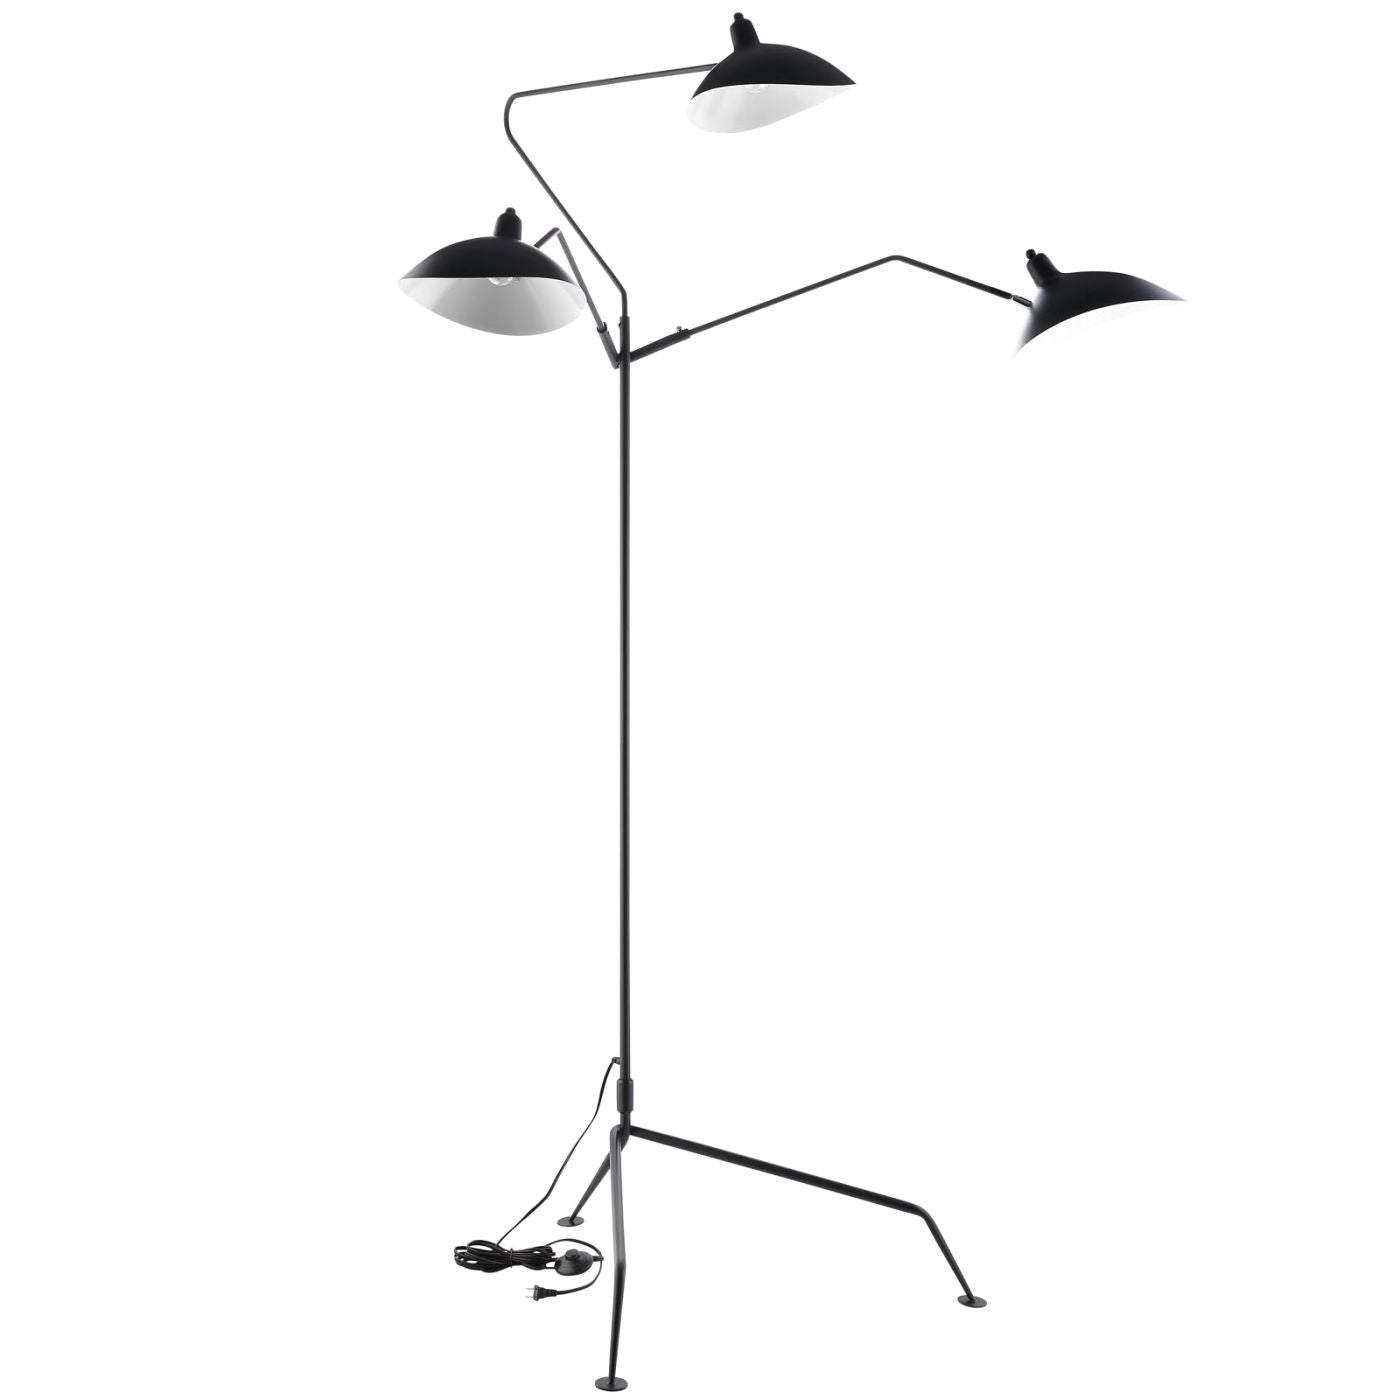 Modway Floor Lamps On Sale Eei 1593 View Modern Black Stainless Steel Floor Lamp Only Only 406 05 At Contemporary Furniture Warehouse